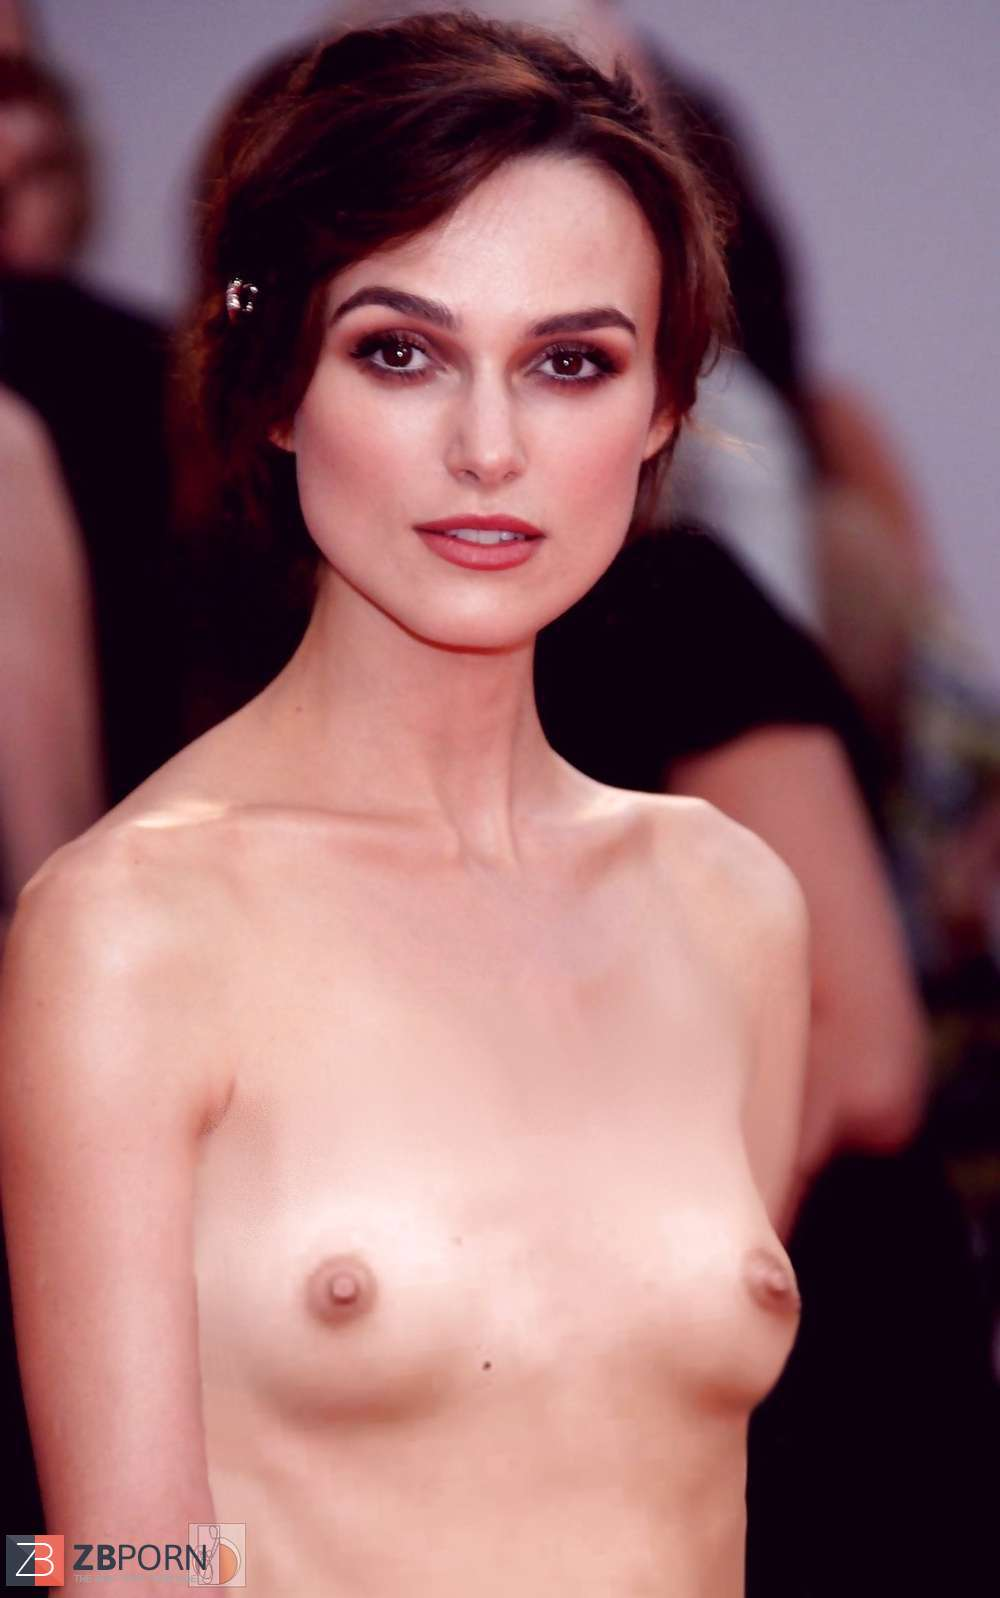 Keira knightley pics exposed breasts pussy vid download